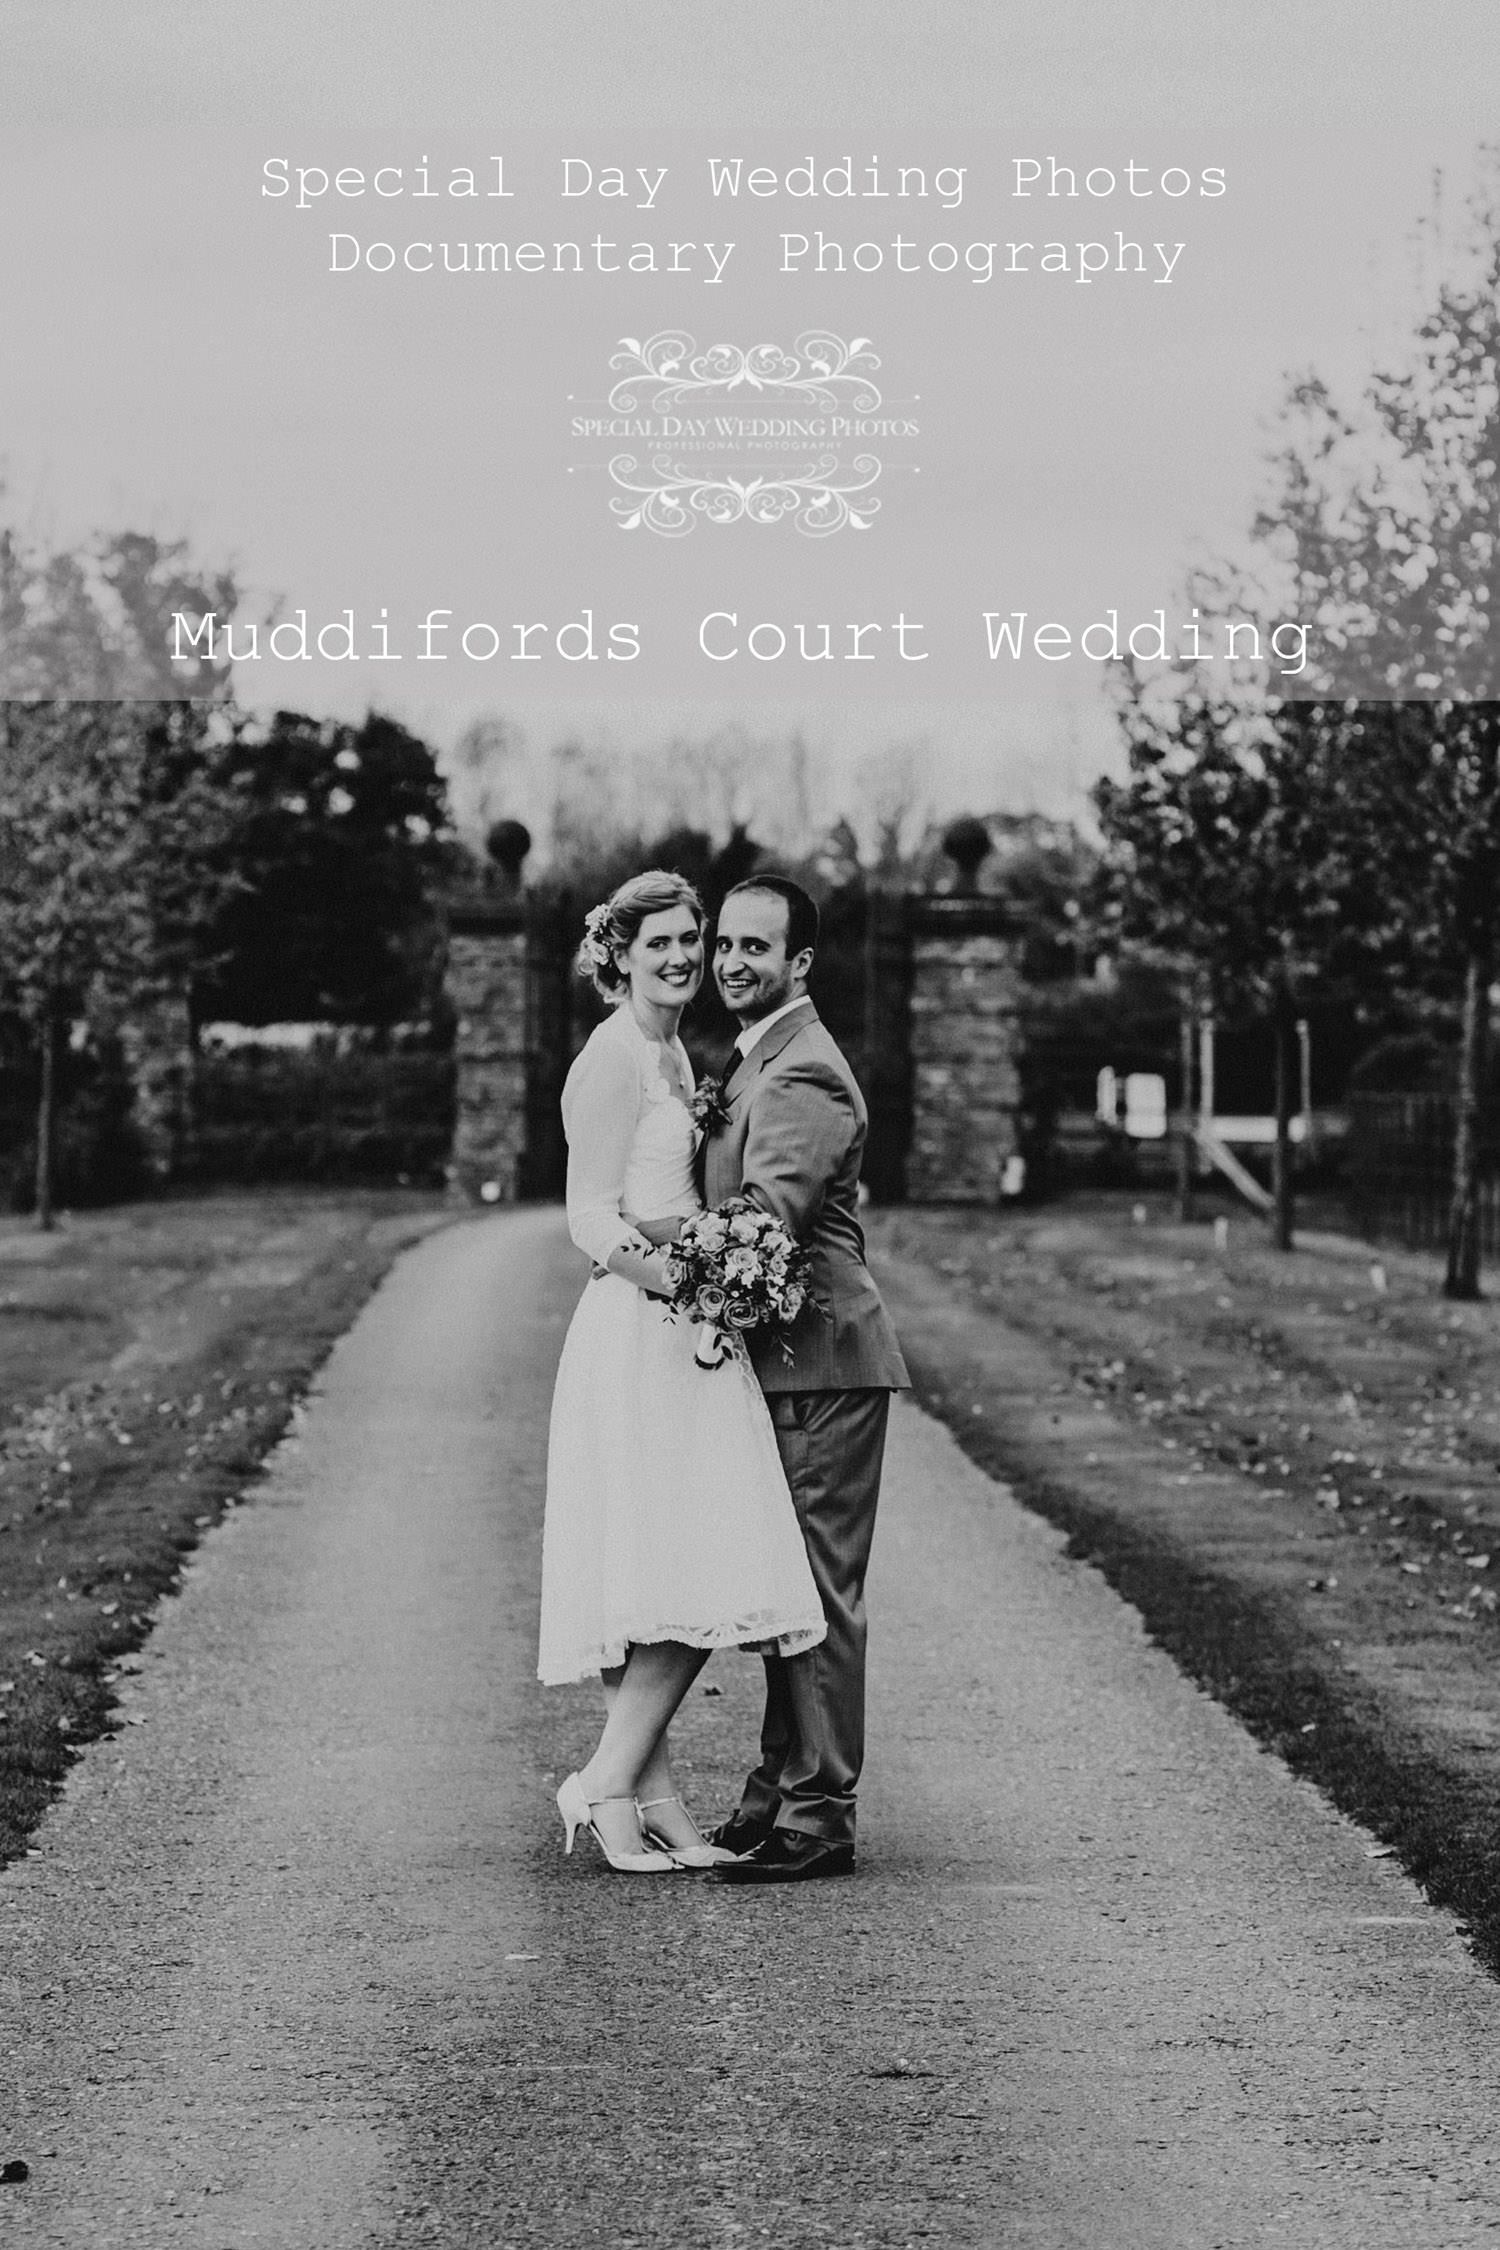 Muddifords Court Wedding, Devon.